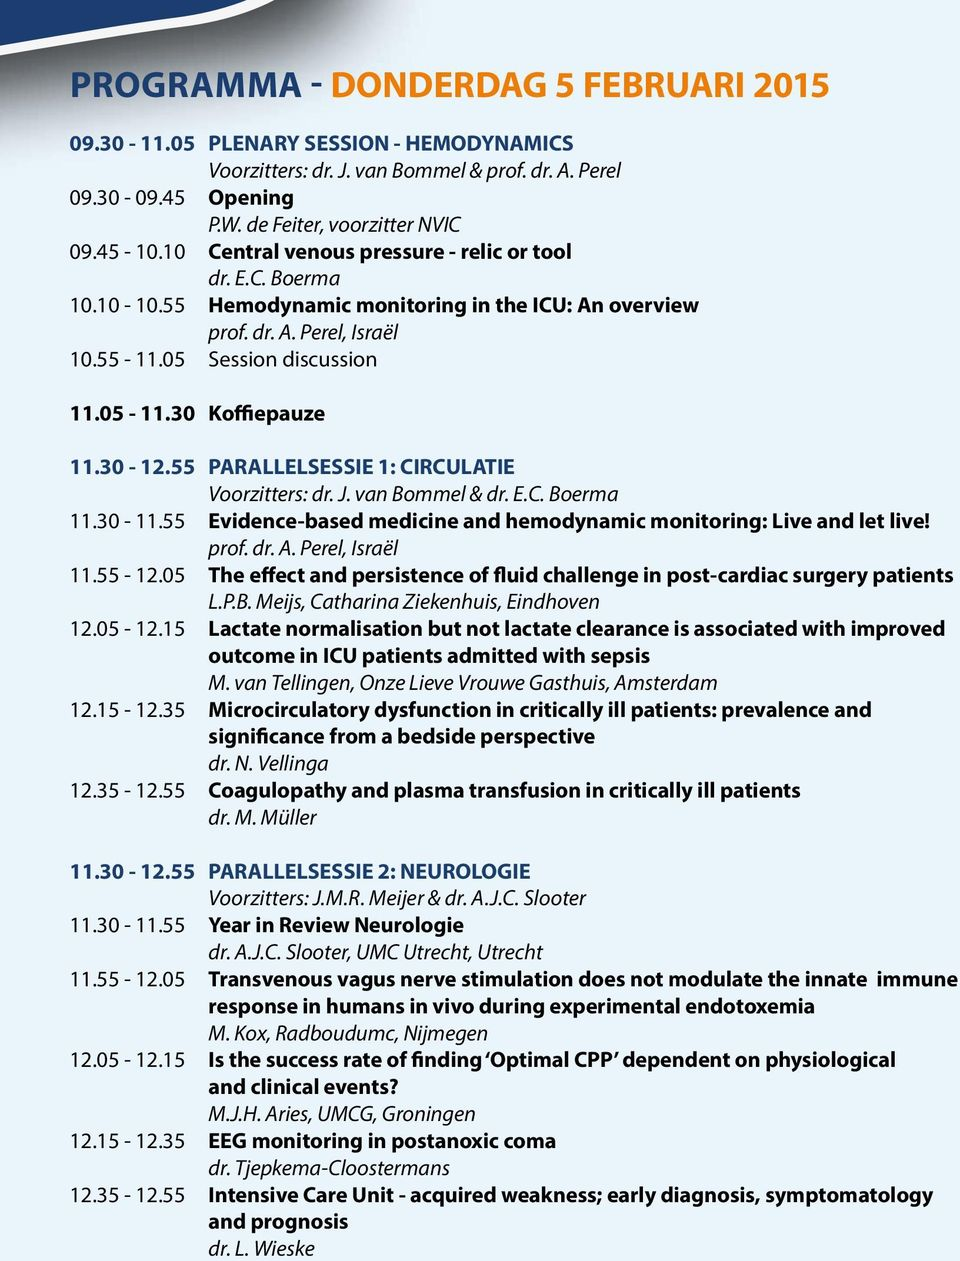 30 Koffiepauze 11.30-12.55 PARALLELSESSIE 1: CIRCULATIE Voorzitters: dr. J. van Bommel & dr. E.C. Boerma 11.30-11.55 Evidence-based medicine and hemodynamic monitoring: Live and let live! prof. dr. A.